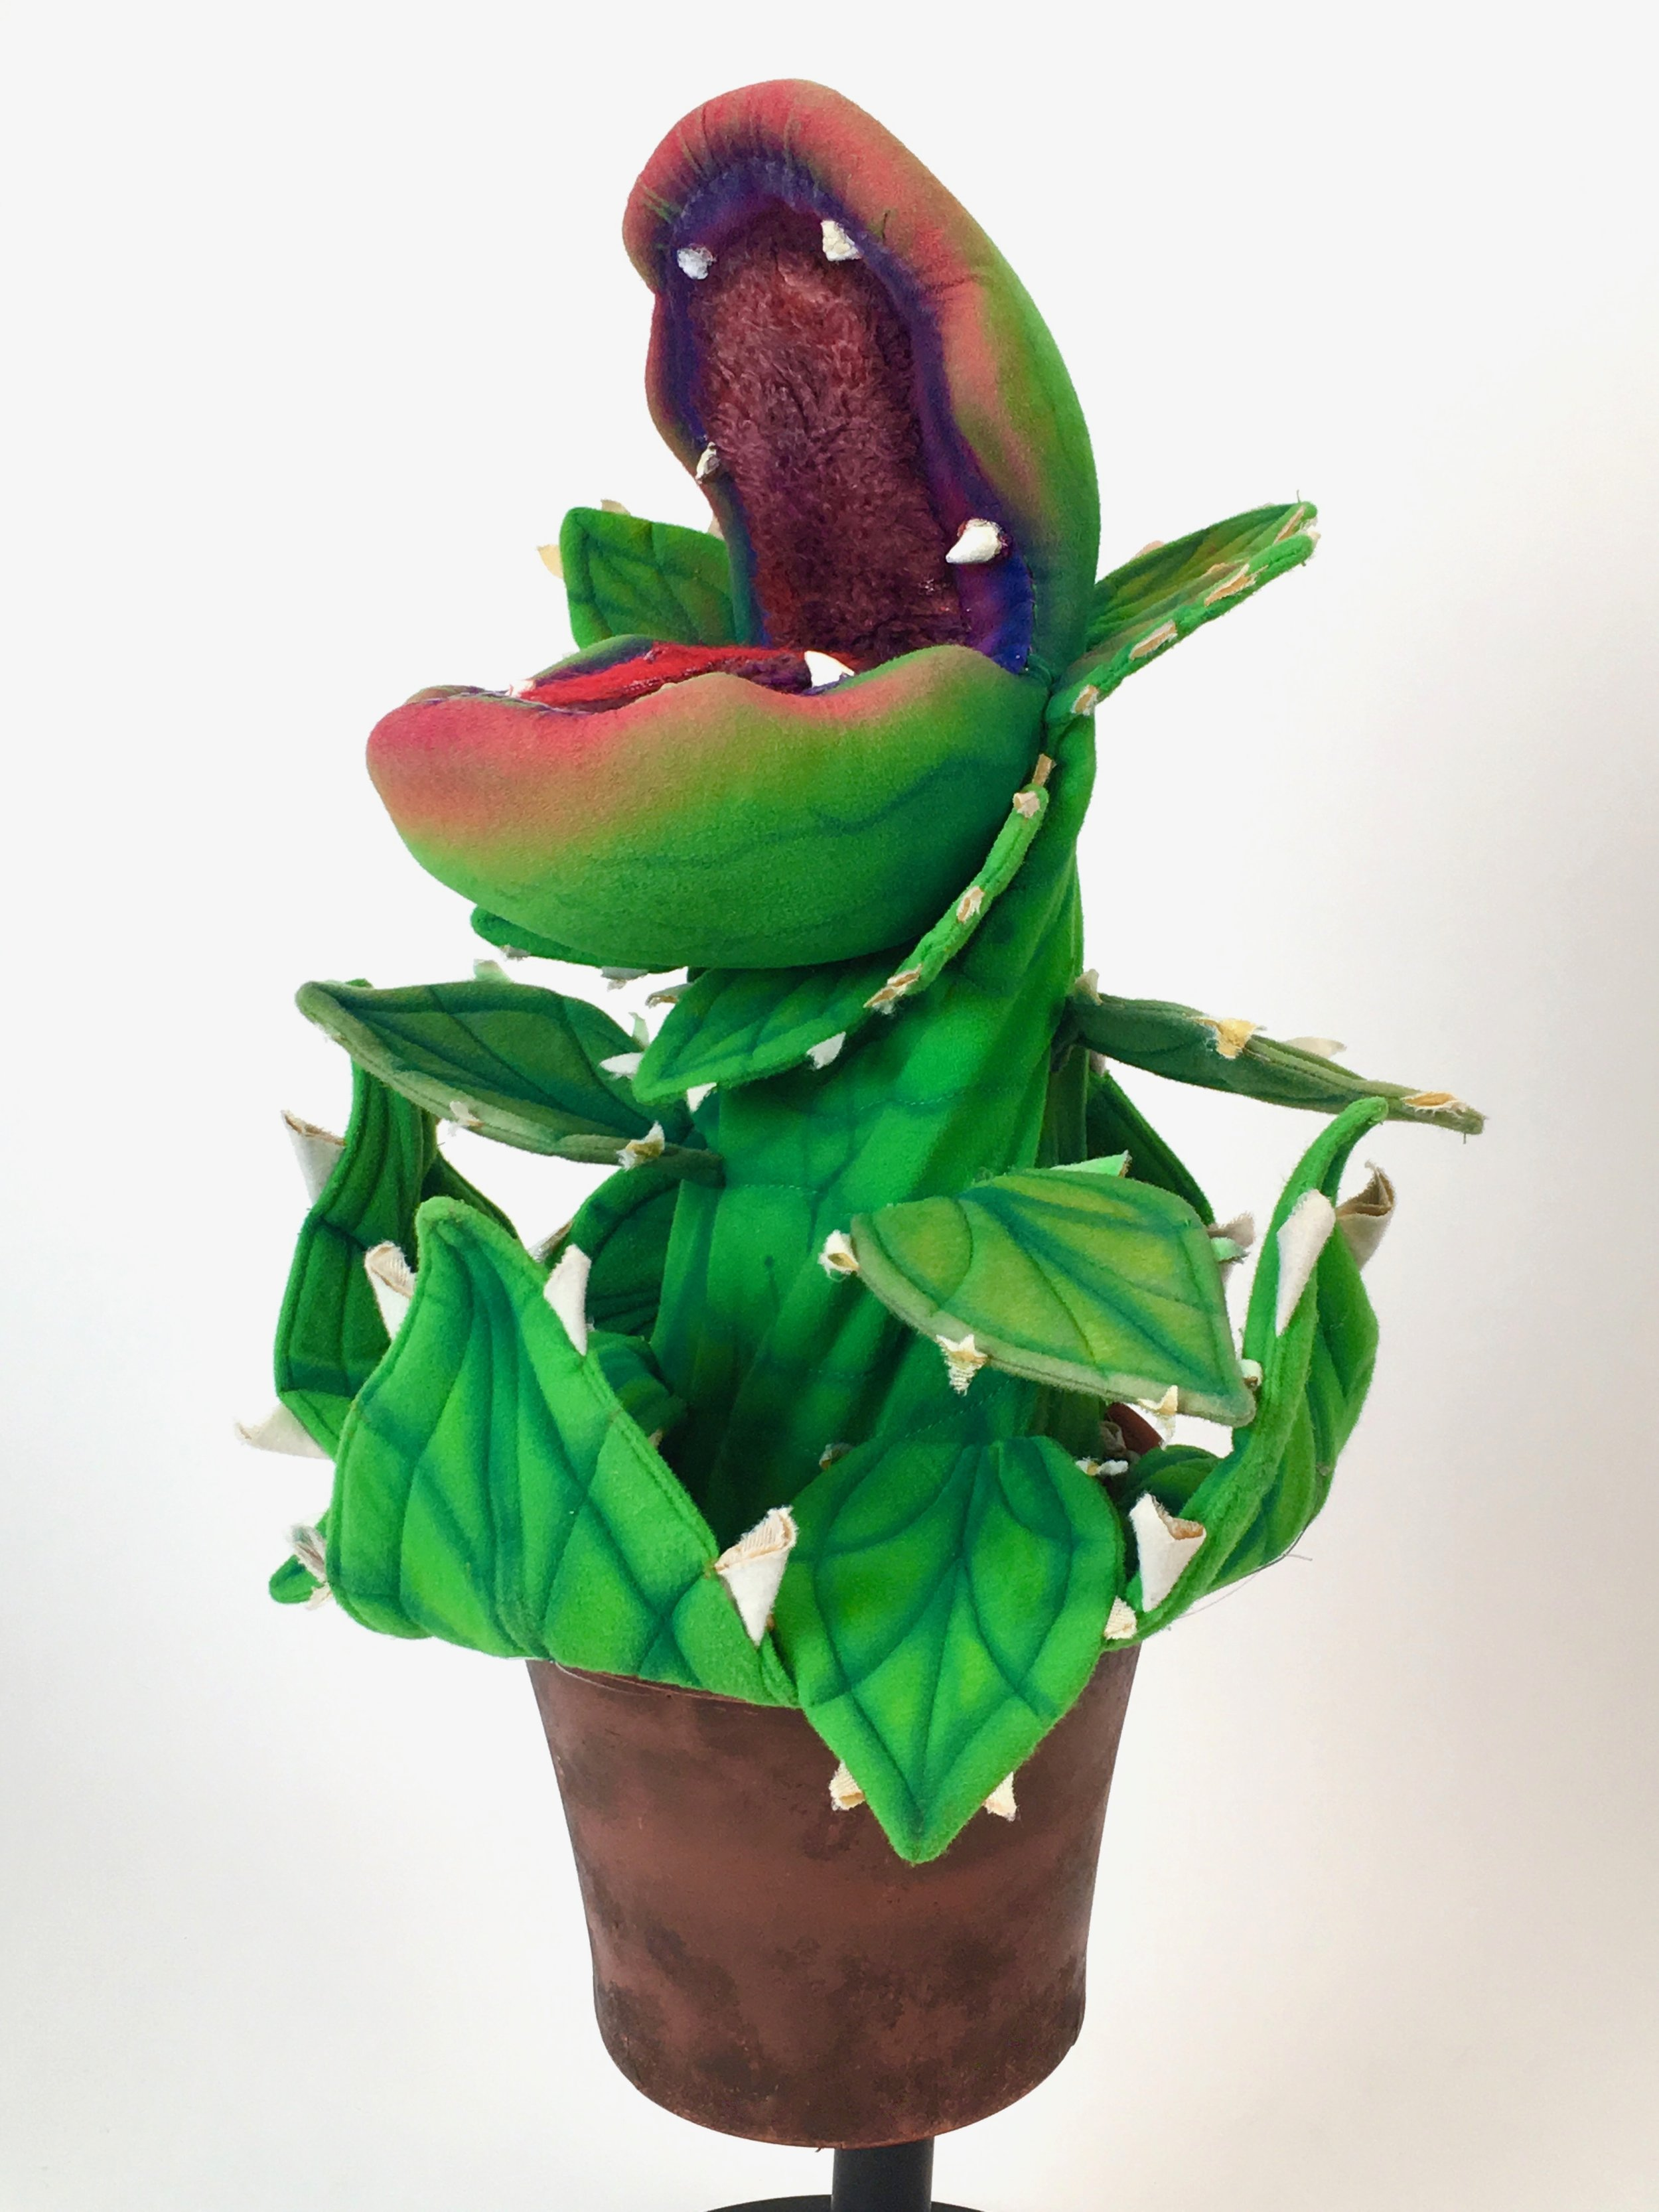 Little shop of Horrors Rental Audrey 2 (Puppet #1 of 4) by McAvene.jpg